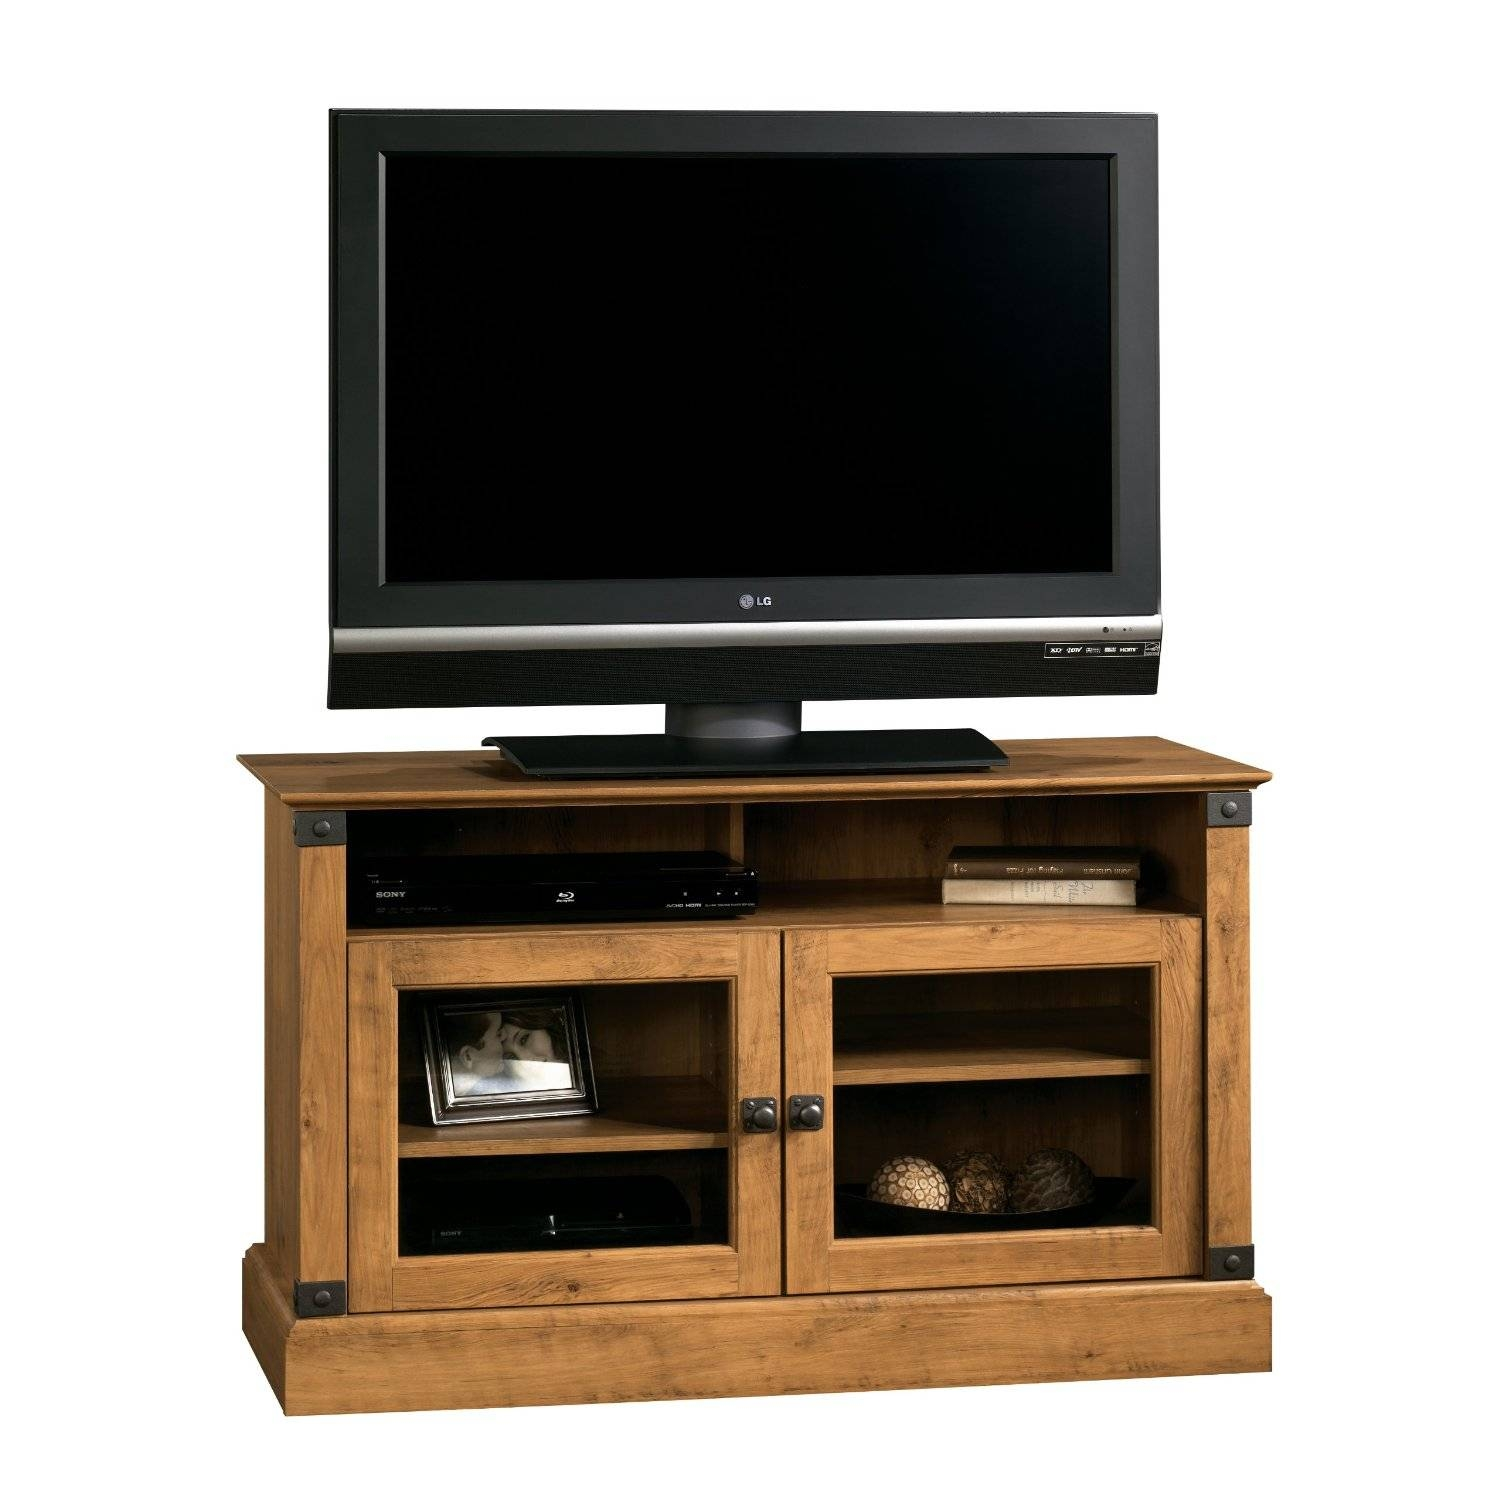 Fresh Cheap Cherry Wood Tv Stands Cabinets #17103 intended for Cheap Wood Tv Stands (Image 4 of 15)